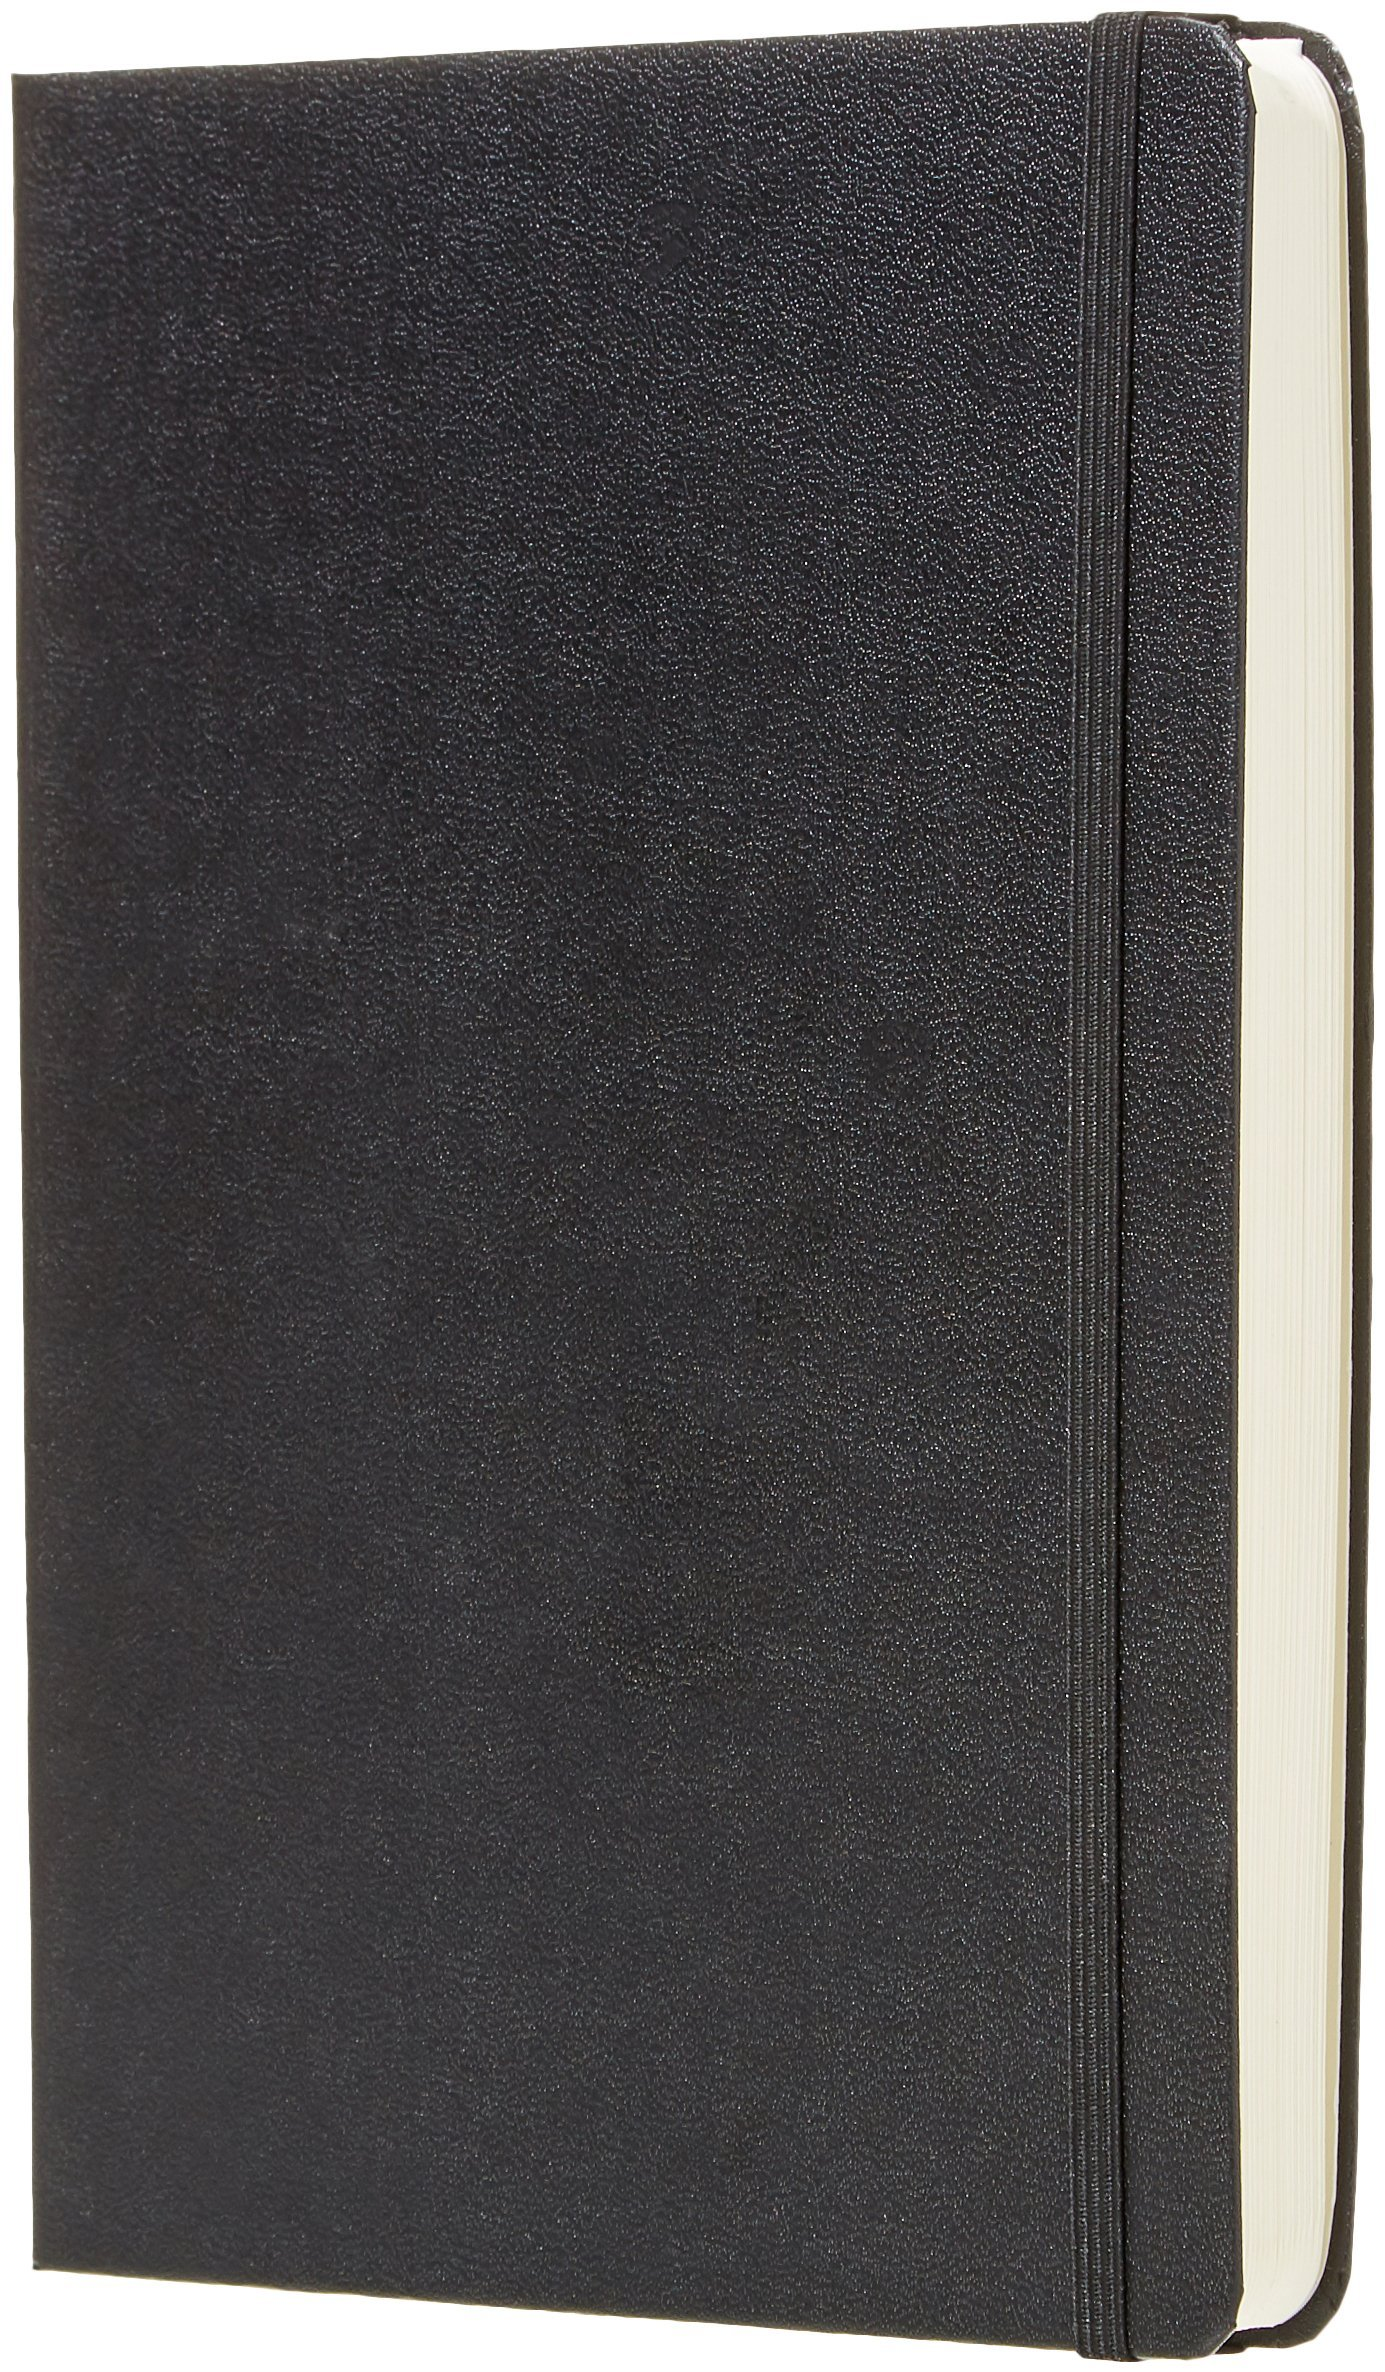 "Amazon Basics Daily Planner and Journal - 5.8"" x 8.25"", Hard Cover"